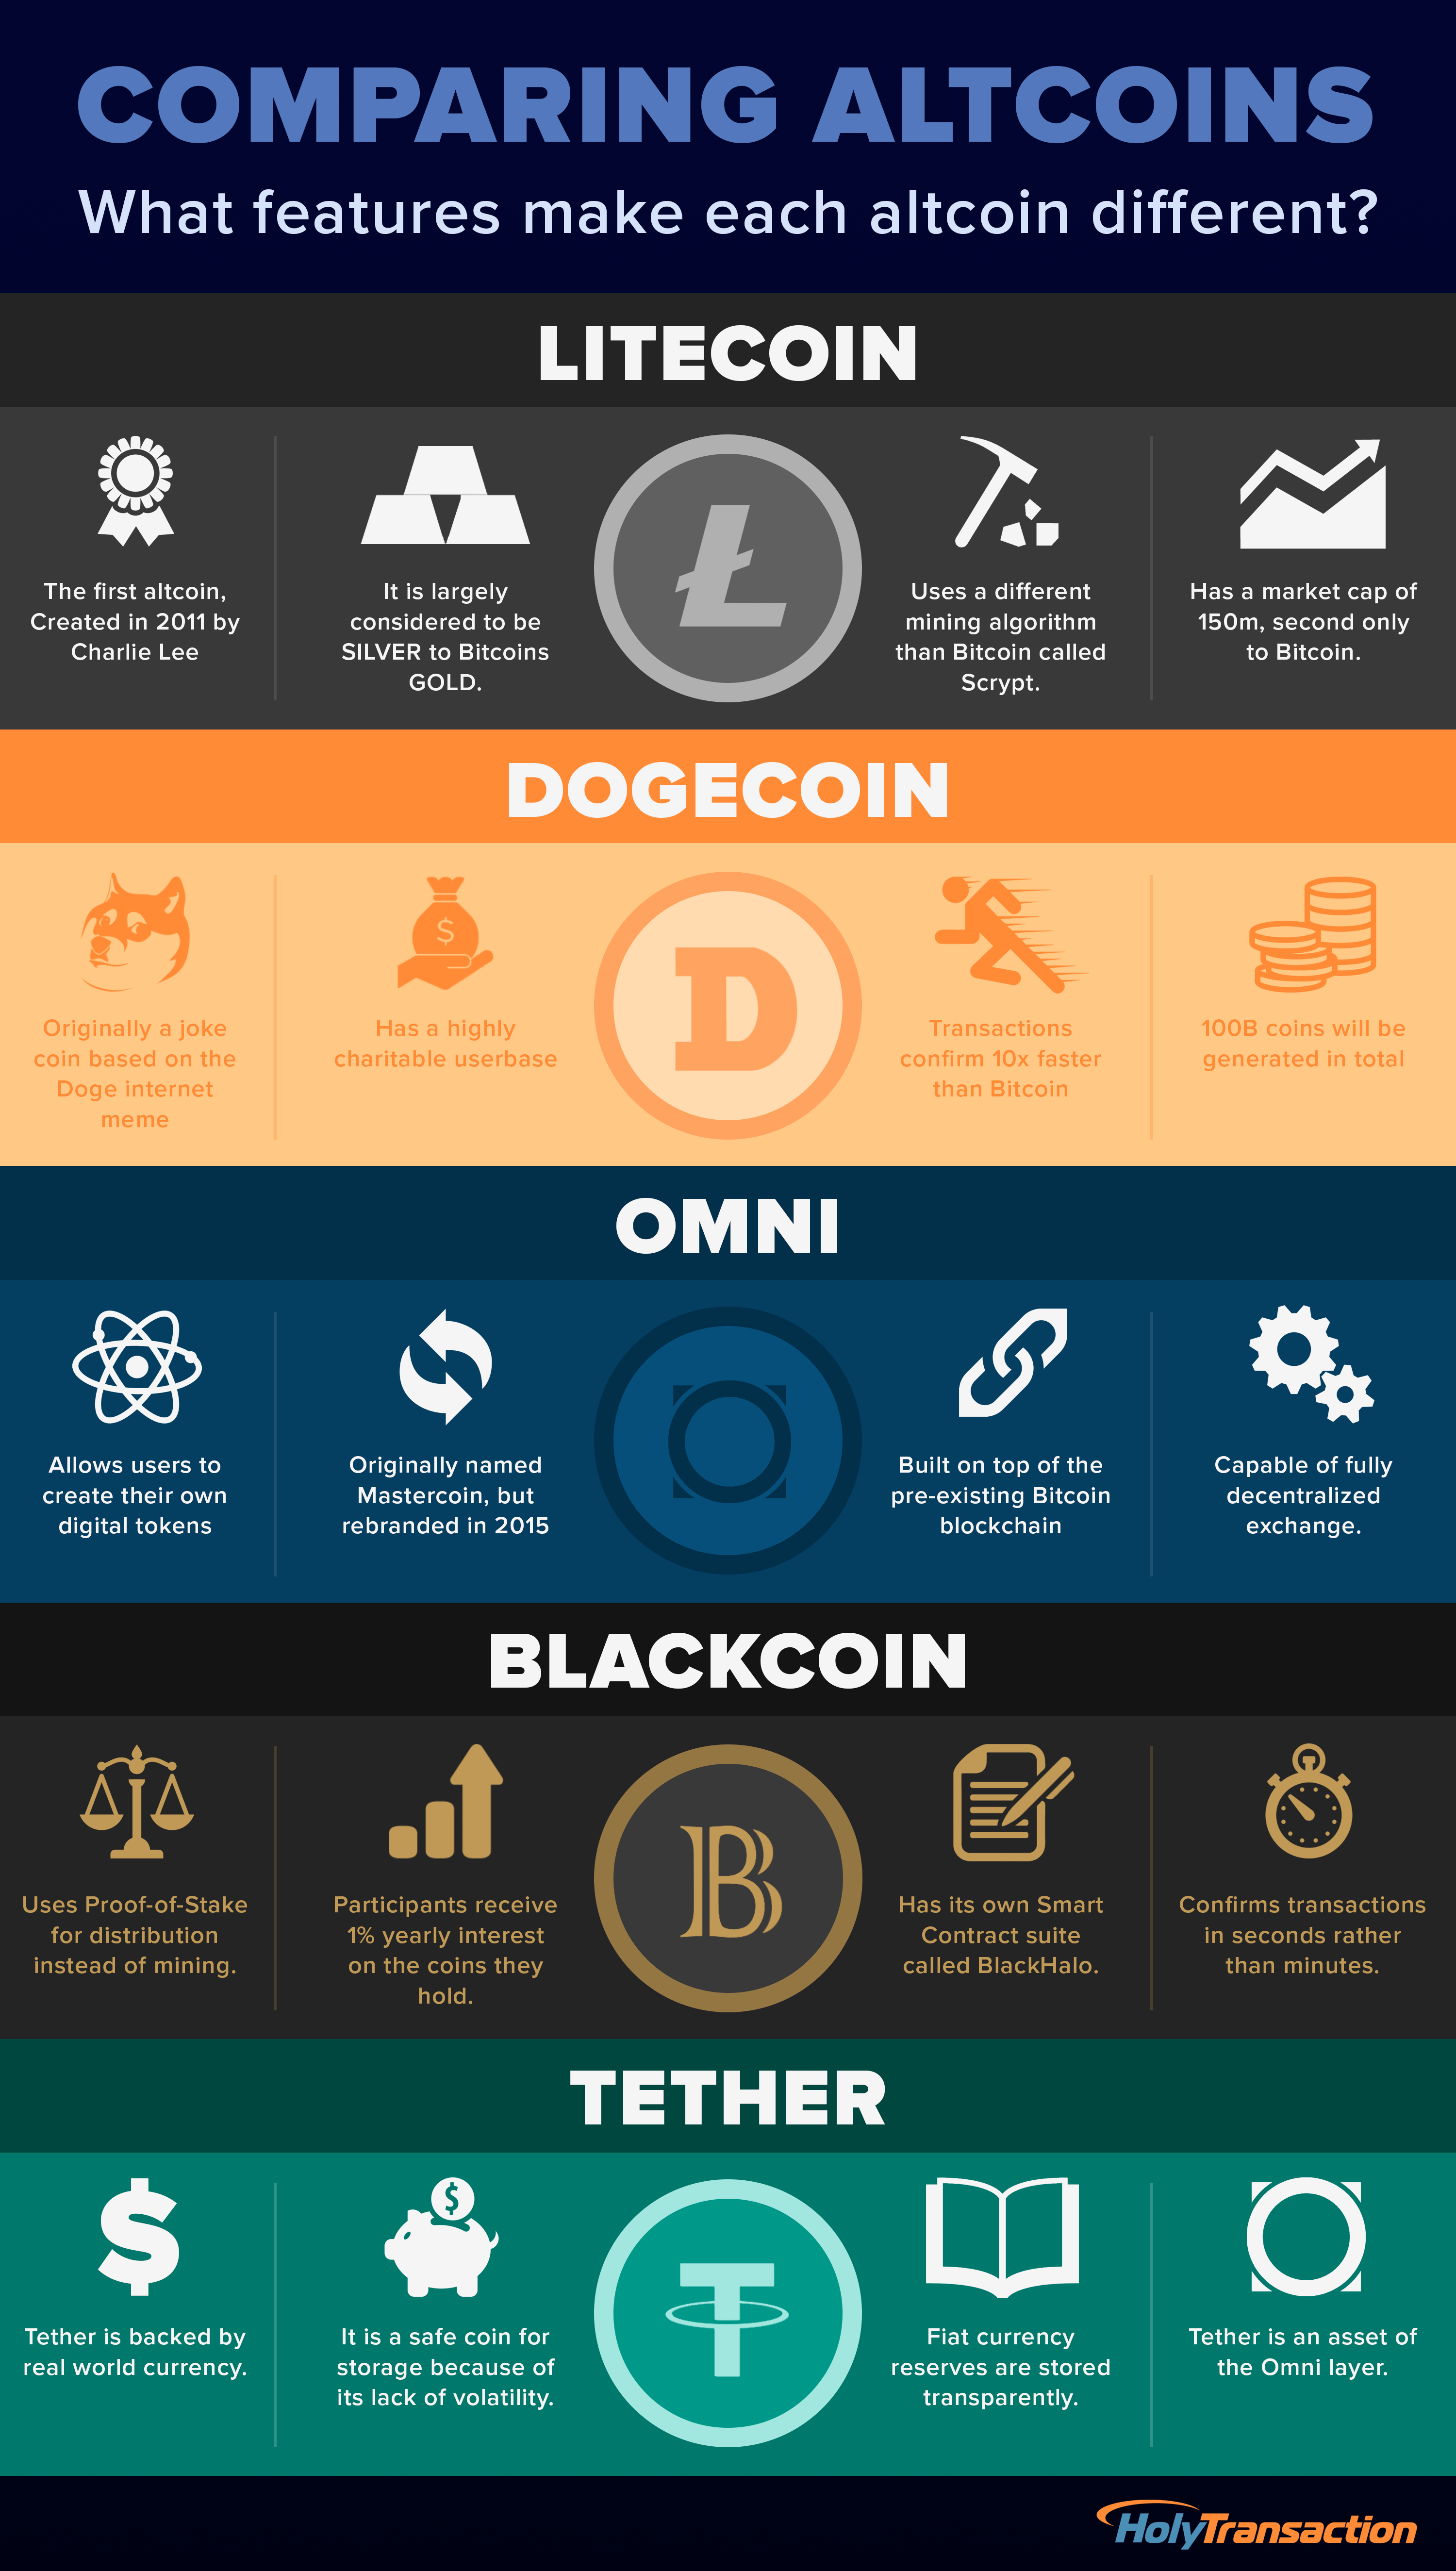 Comparing Altcoins - Infographic | Bitcoin, Altcoin ...